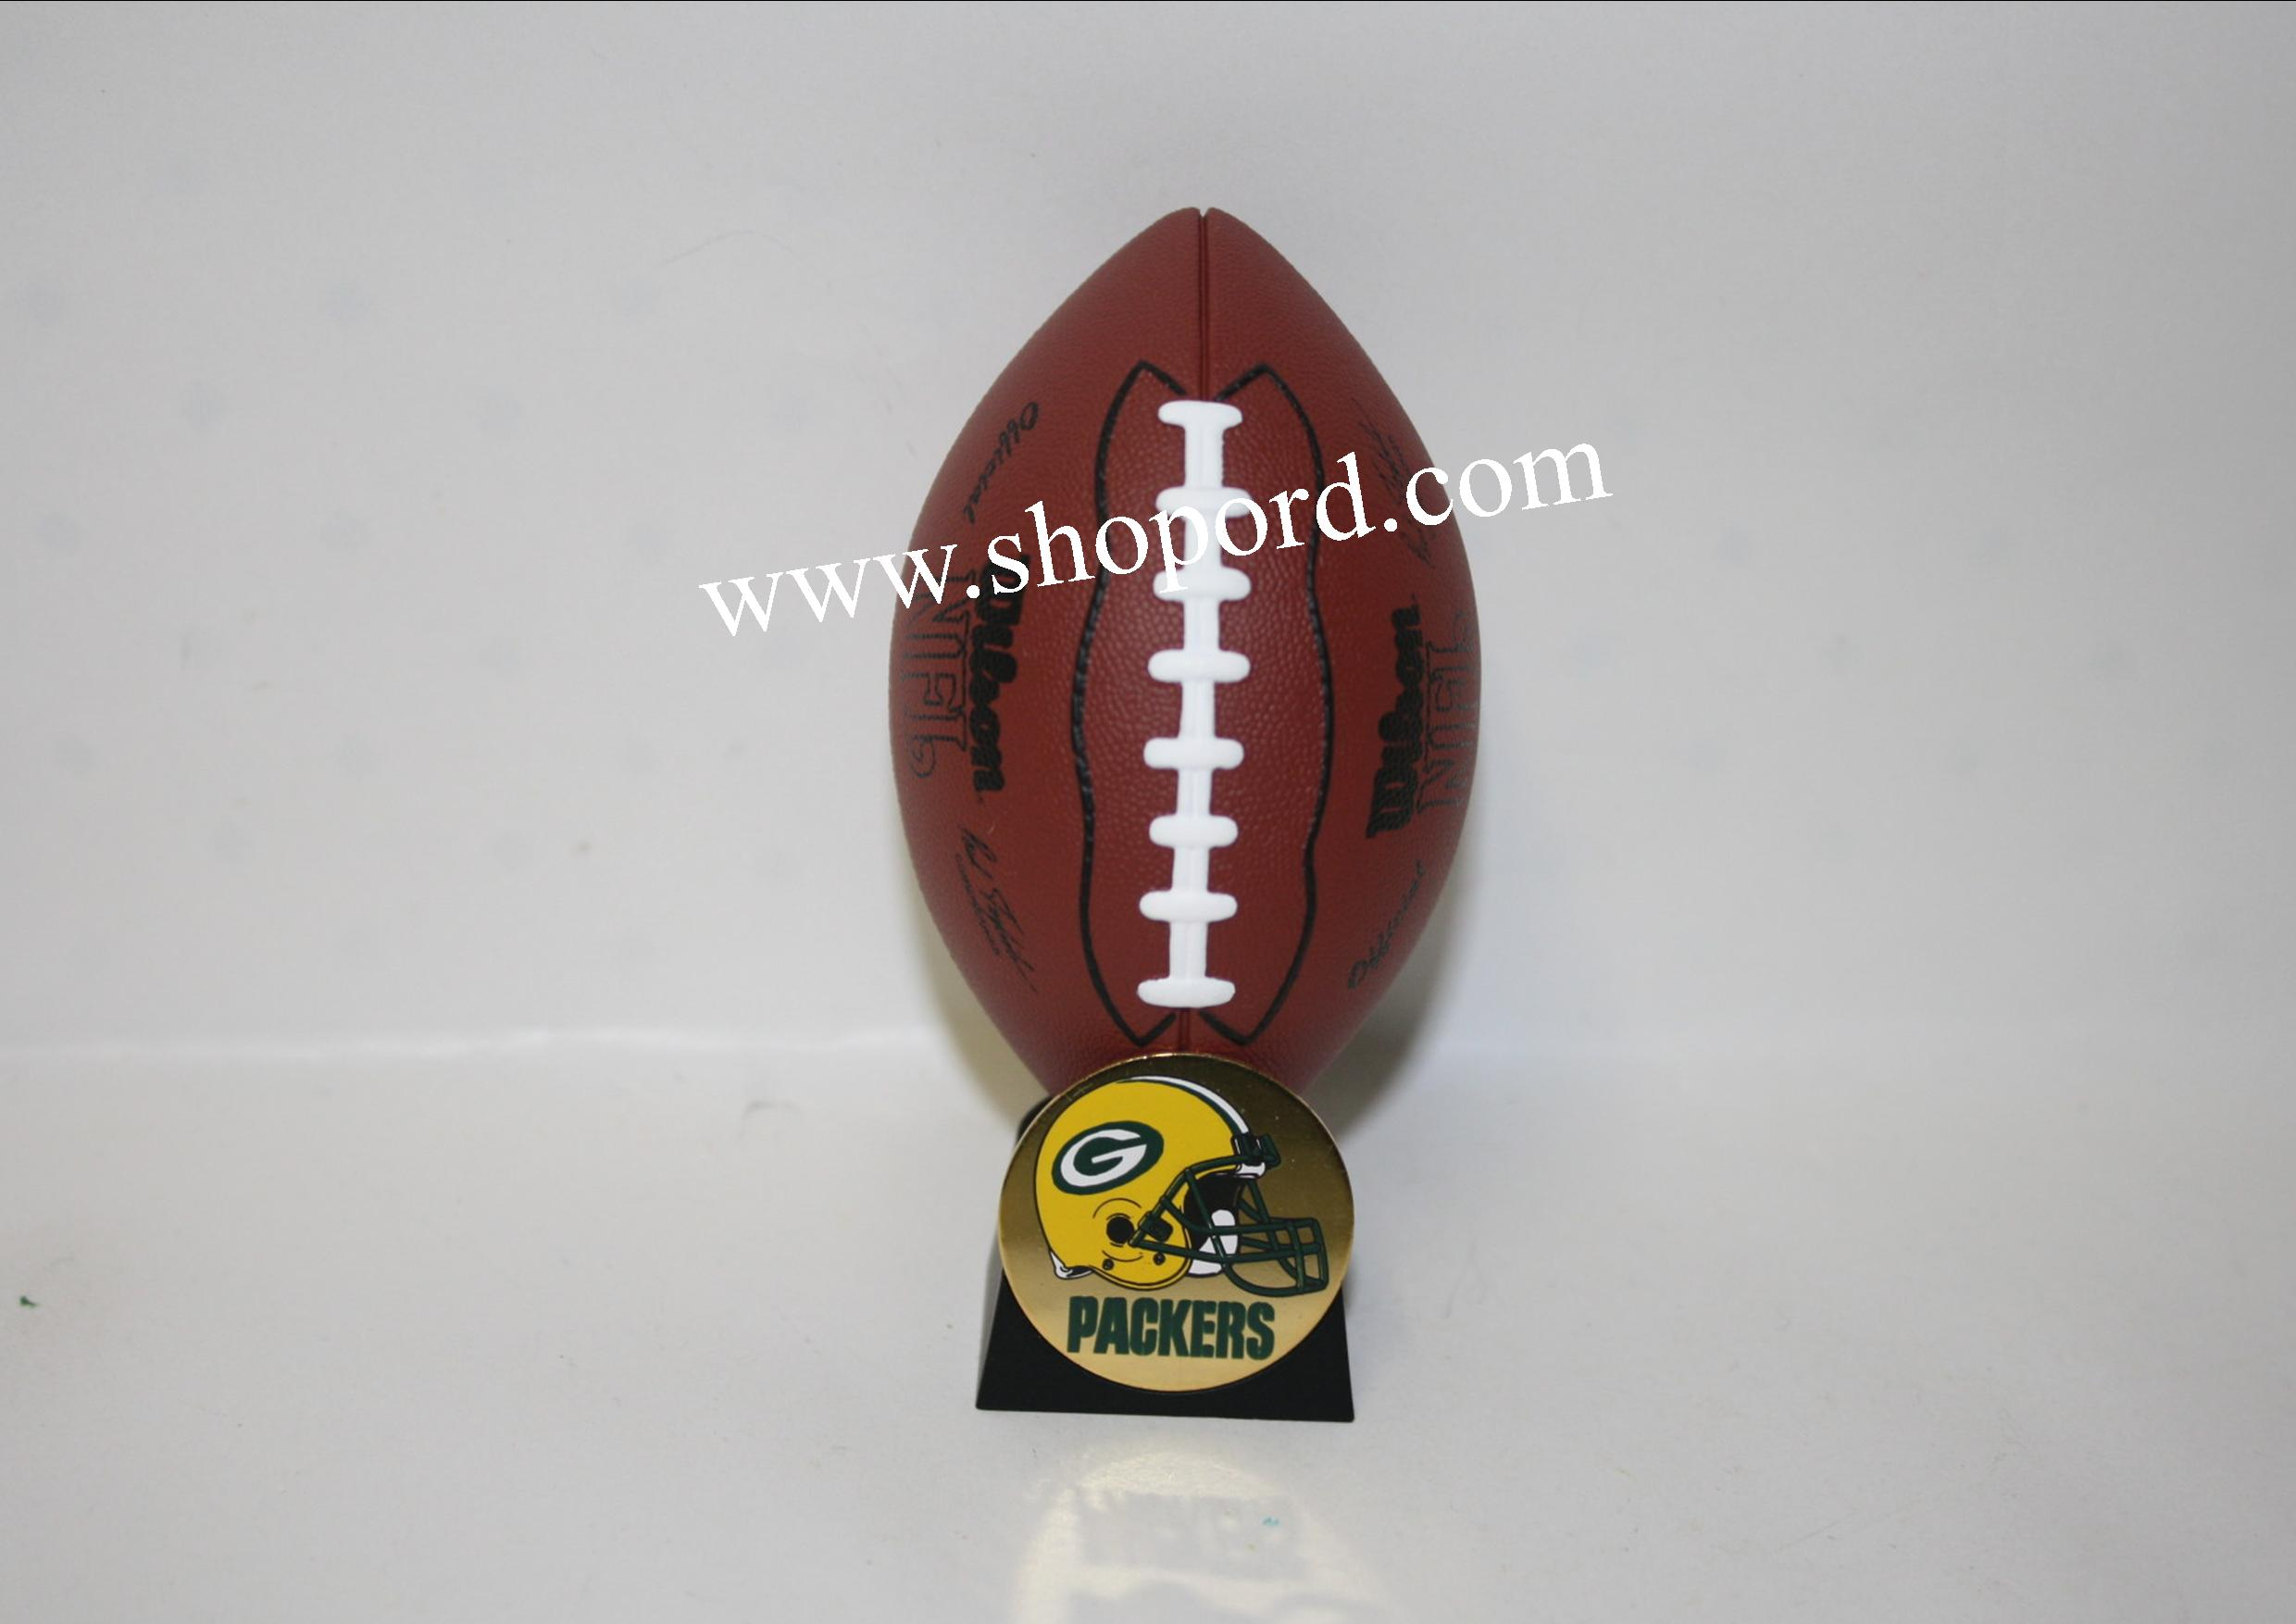 Hallmark 2000 NFL Collection Green Bay Packers Ornament QSR5114